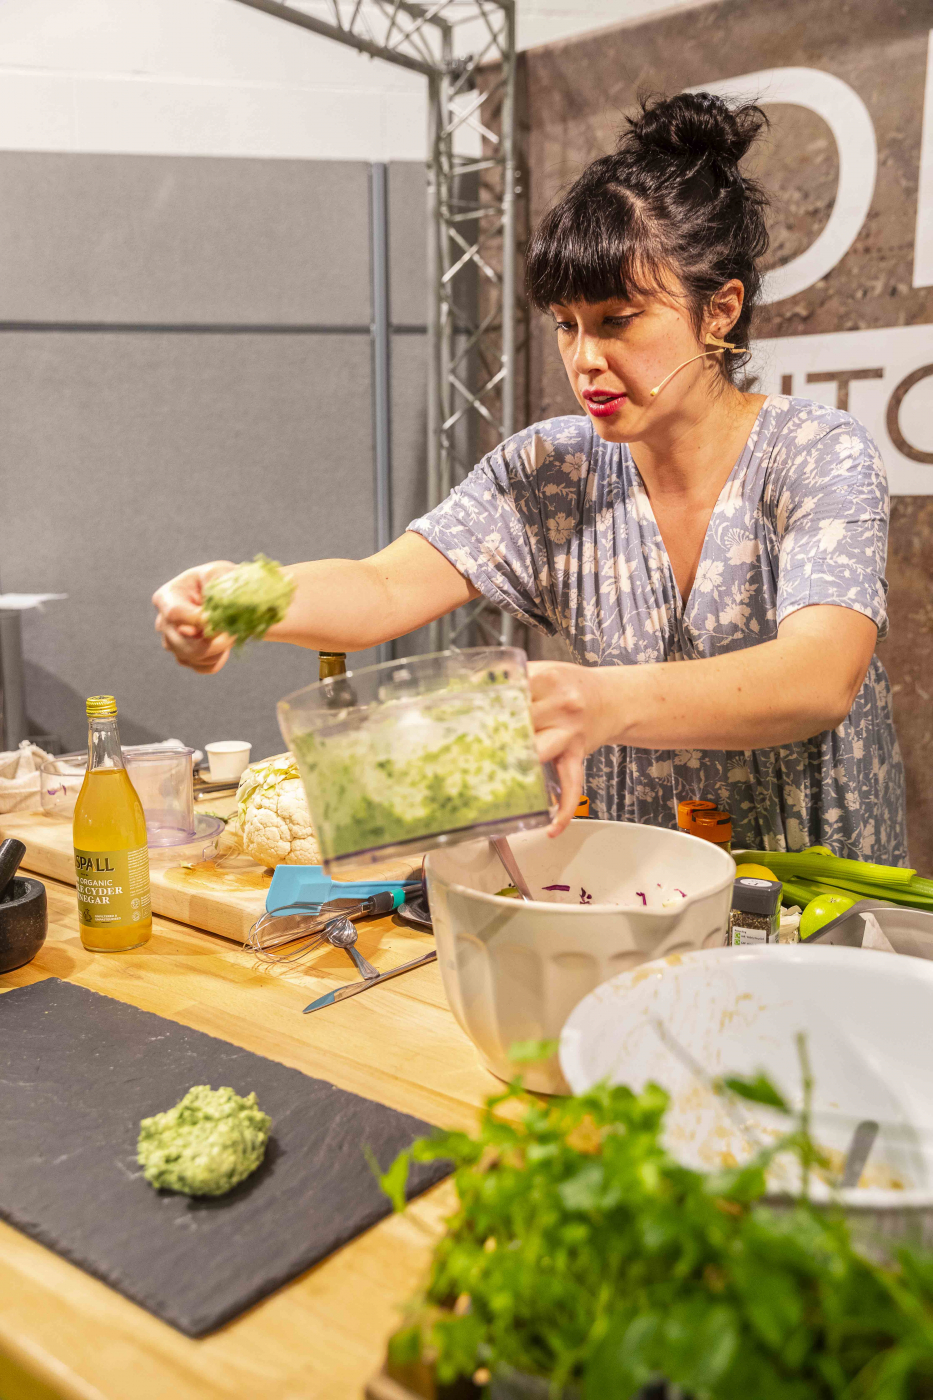 We had a fantastic time at Fine Food Show North this year. With cookery demos from Melissa Hemsley, Chris Bury & Stephanie Moon as well as our popular Feed the Dragon panels and a chance to taste the World Cheese Awards 2019 World Champion Rogue River Blue from Oregon it really was an event not to be missed.  If you're interested in finding out more about next year's Fine Food Show North, held in Harrogate in March, please contact us on 01747 825200.